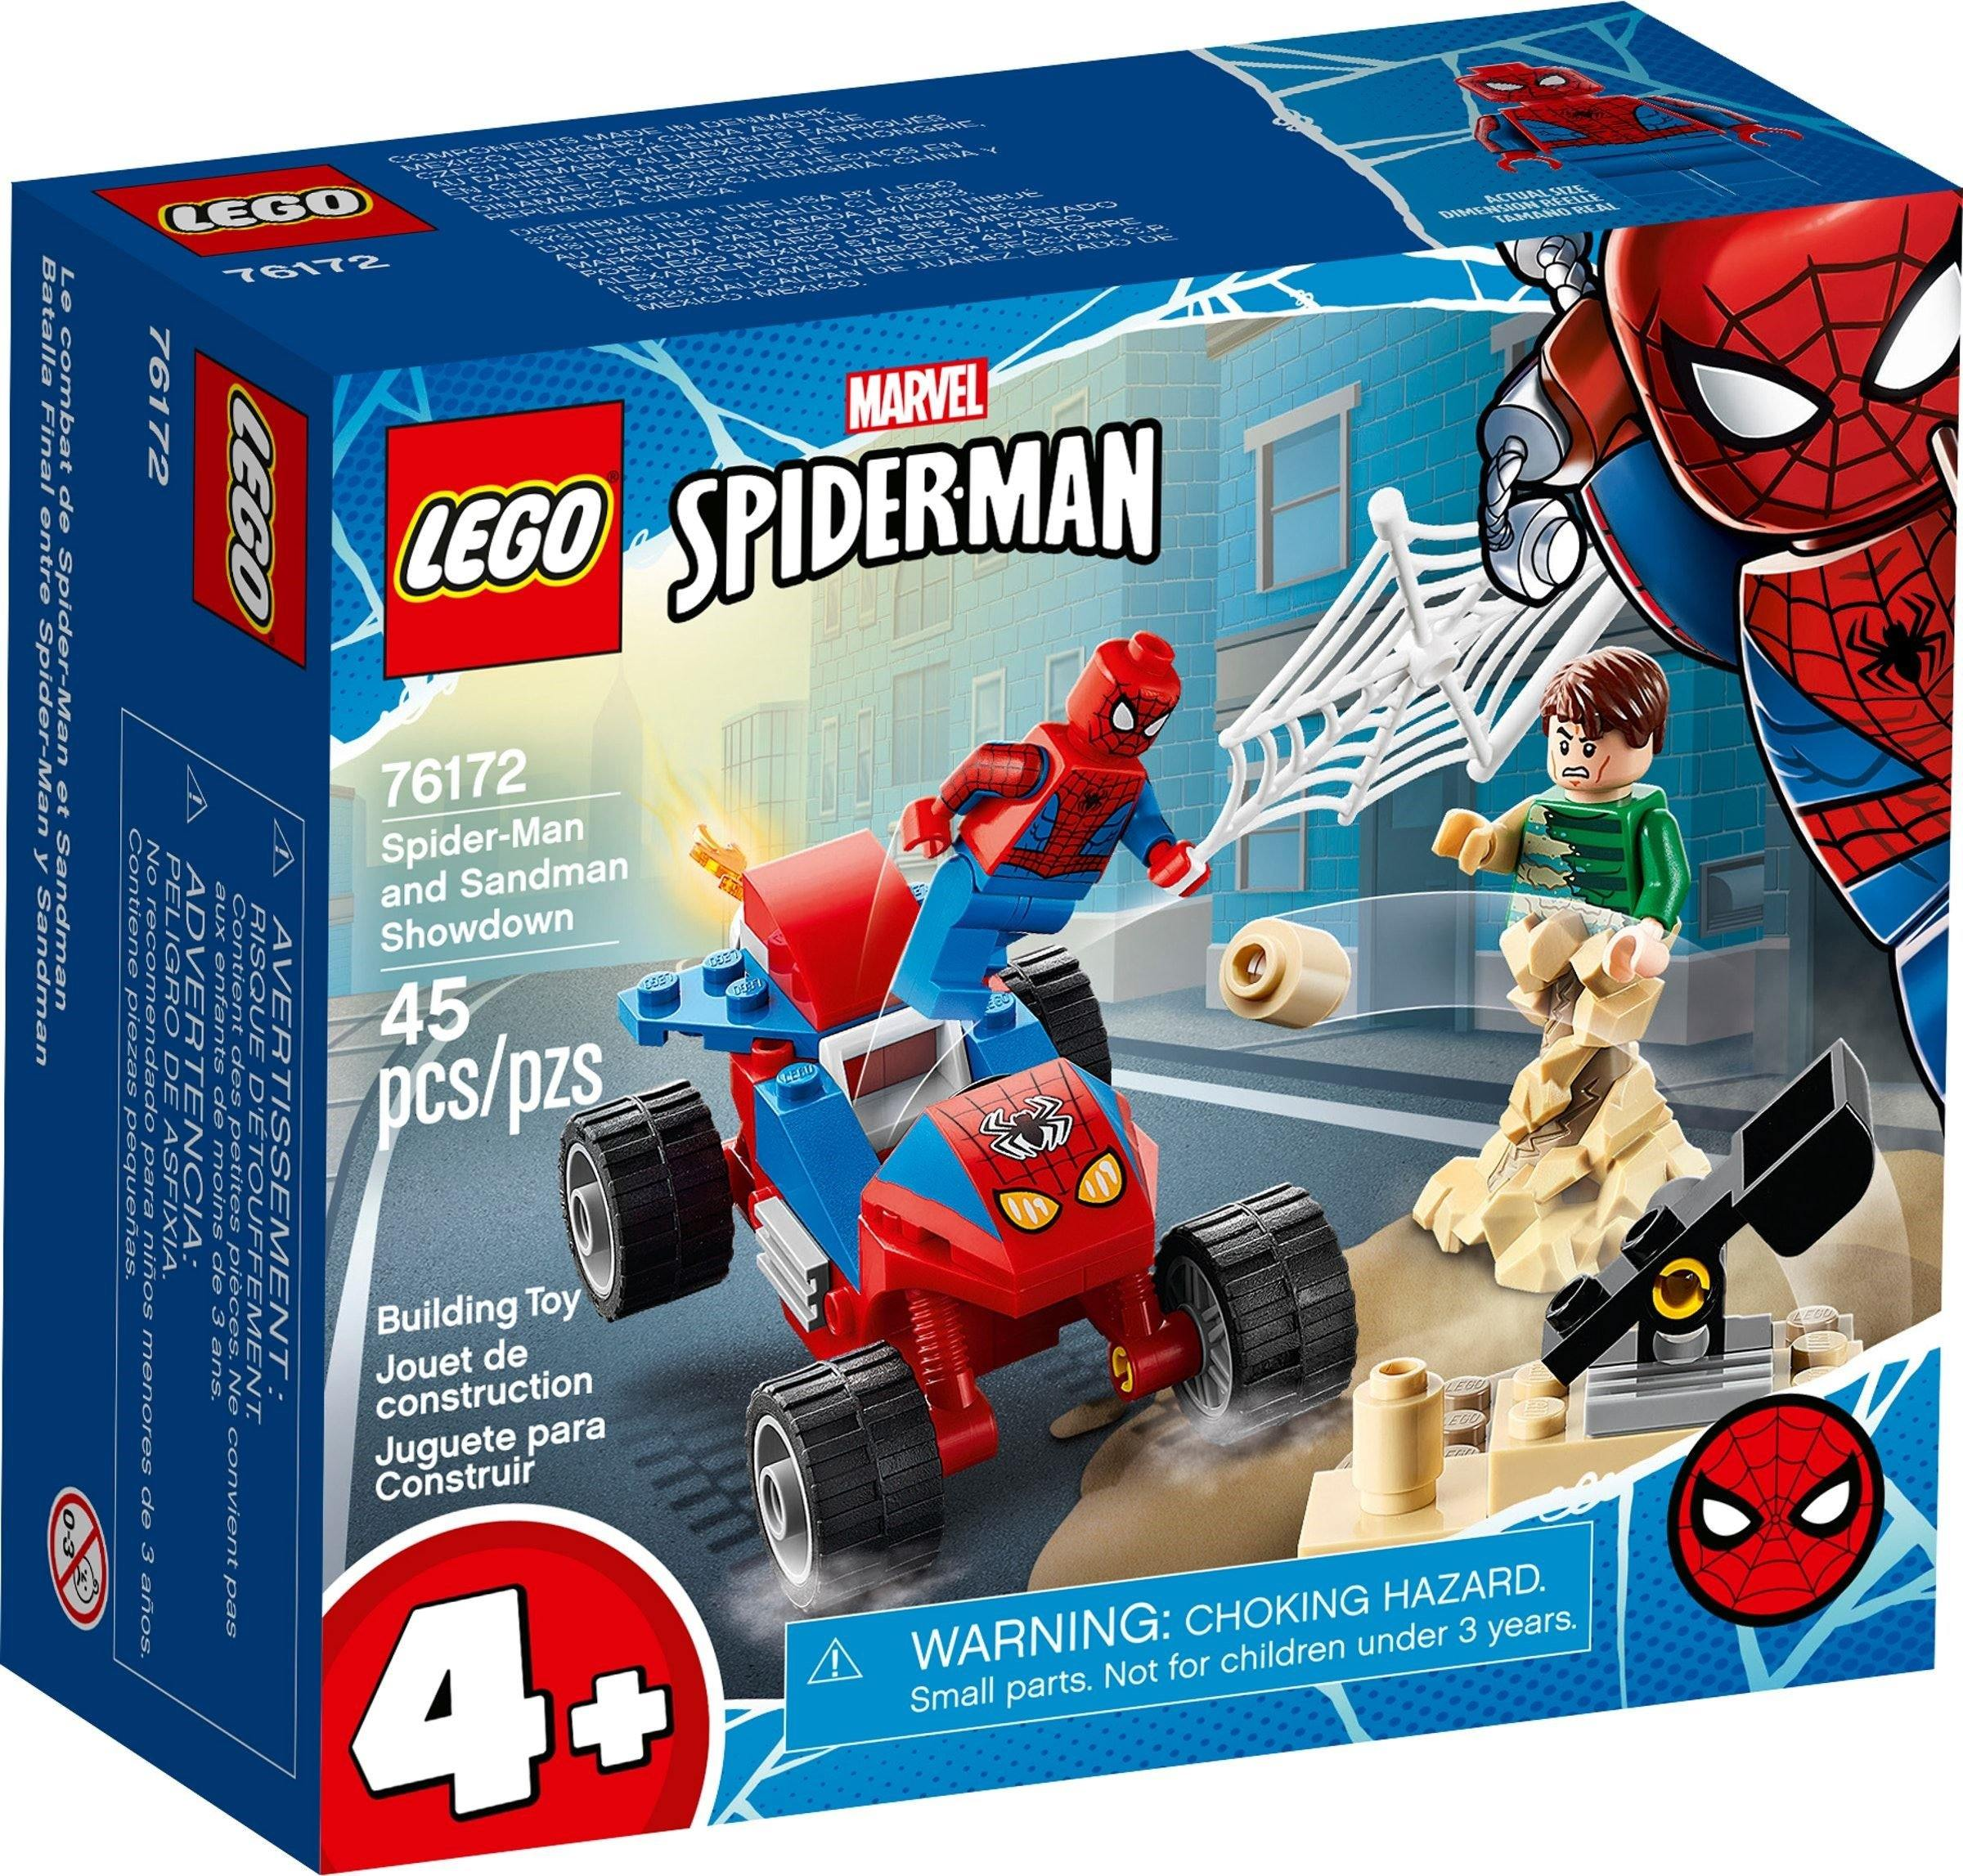 Lego Set 76172 Spider-Man and Sandman Showdown